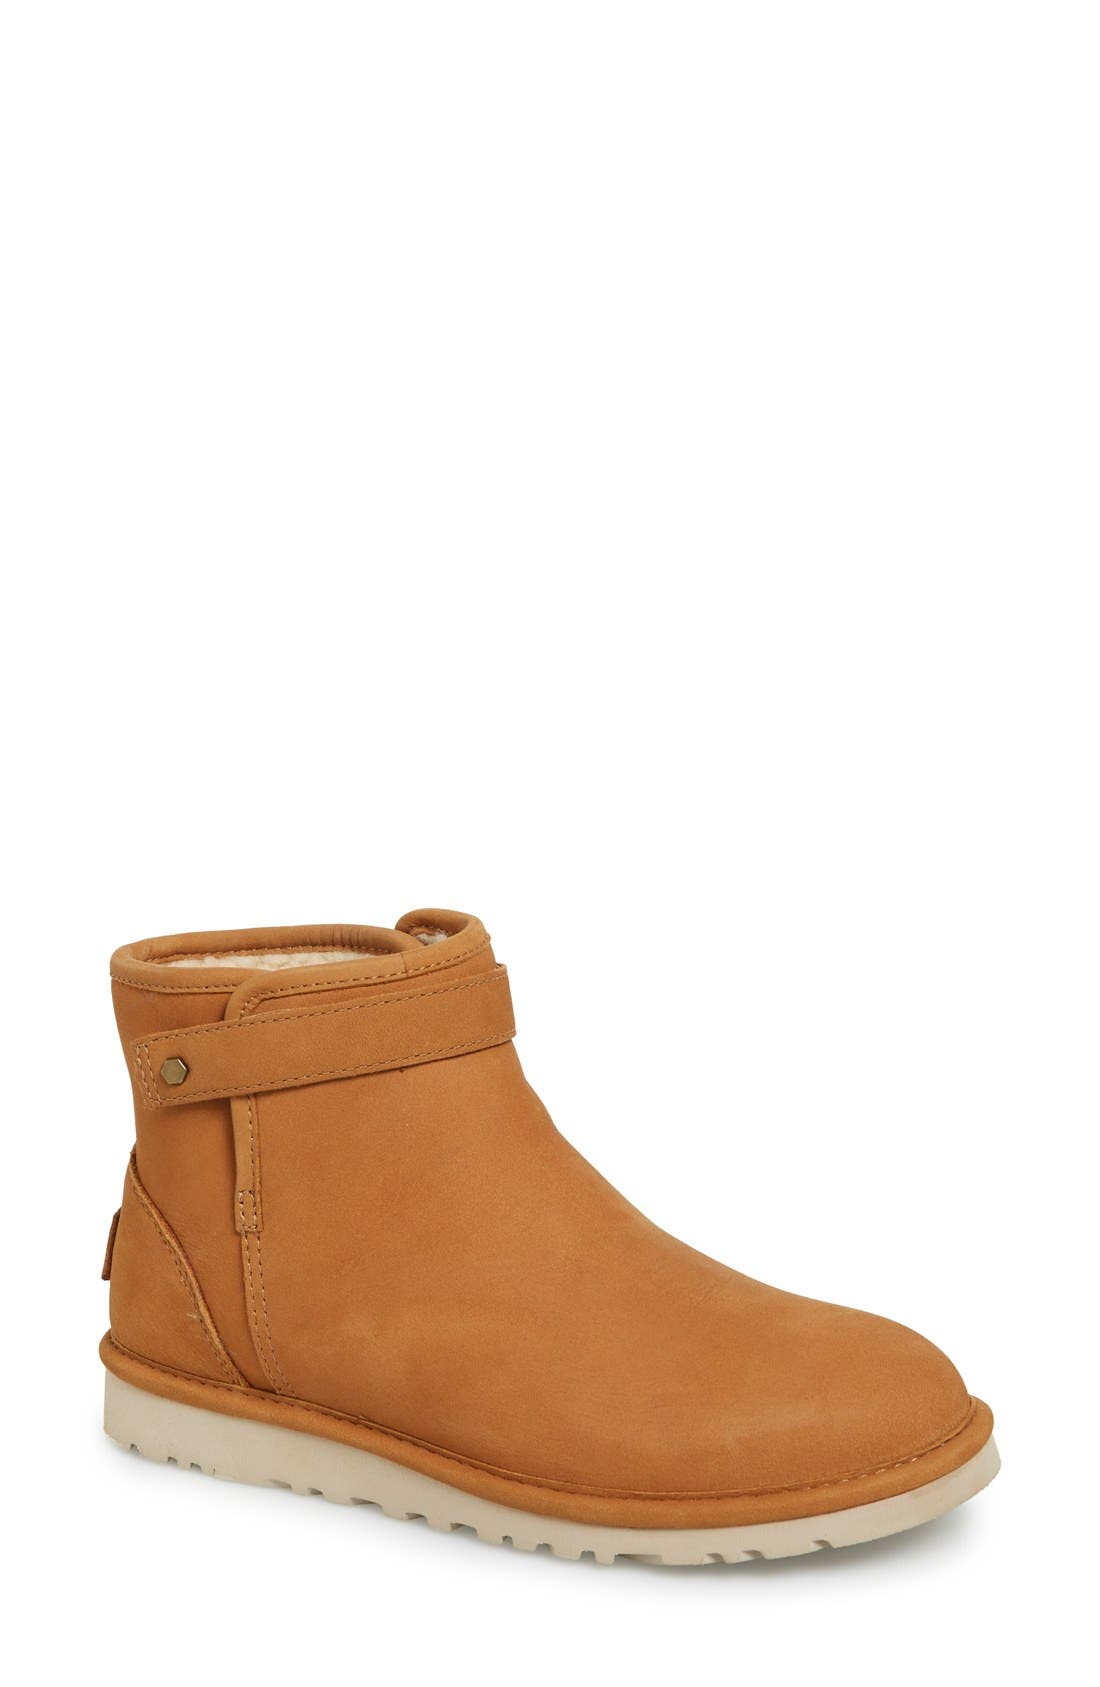 'Rella' Leather Ankle Boot,                             Main thumbnail 1, color,                             219